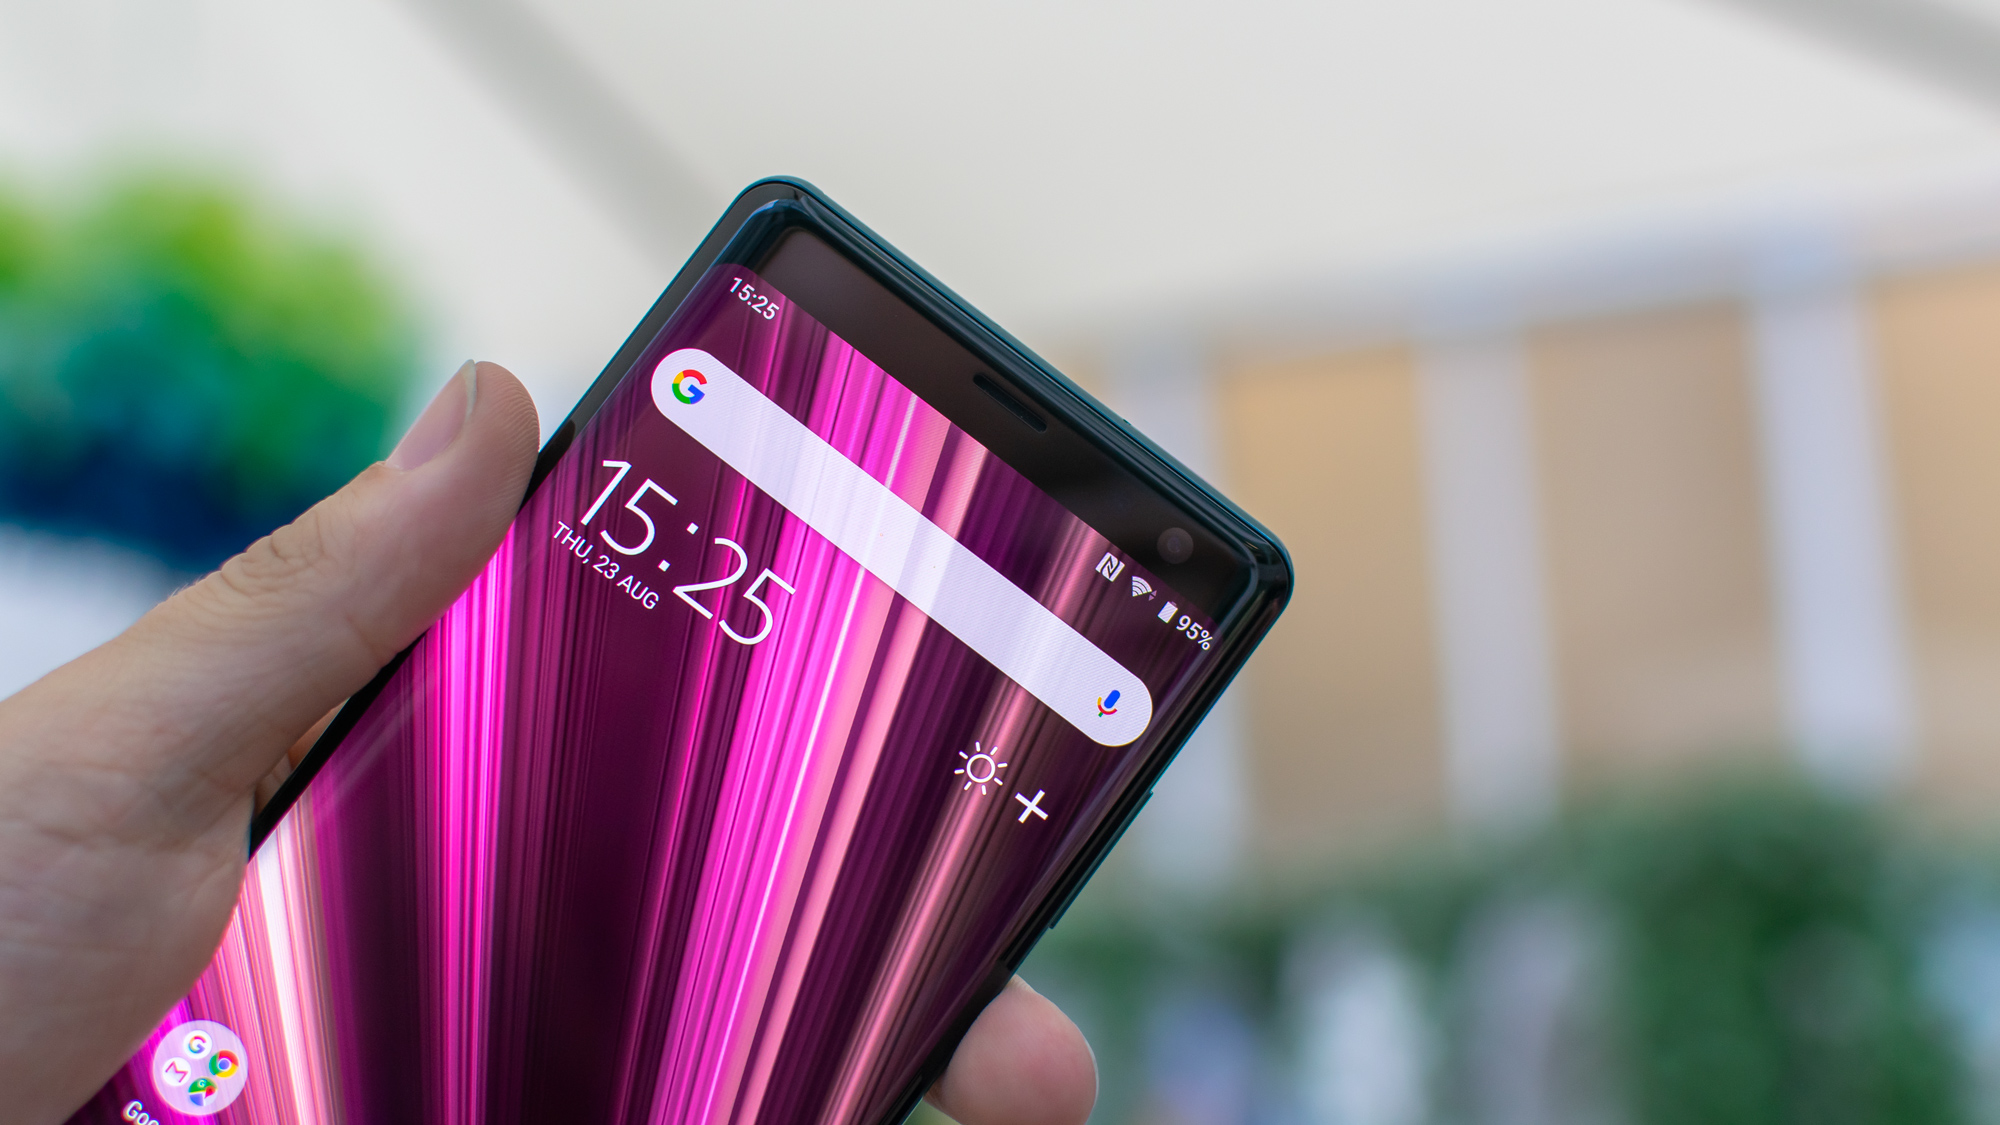 Sony launches yet another timid Xperia XZ3 smartphone at IFA 2018